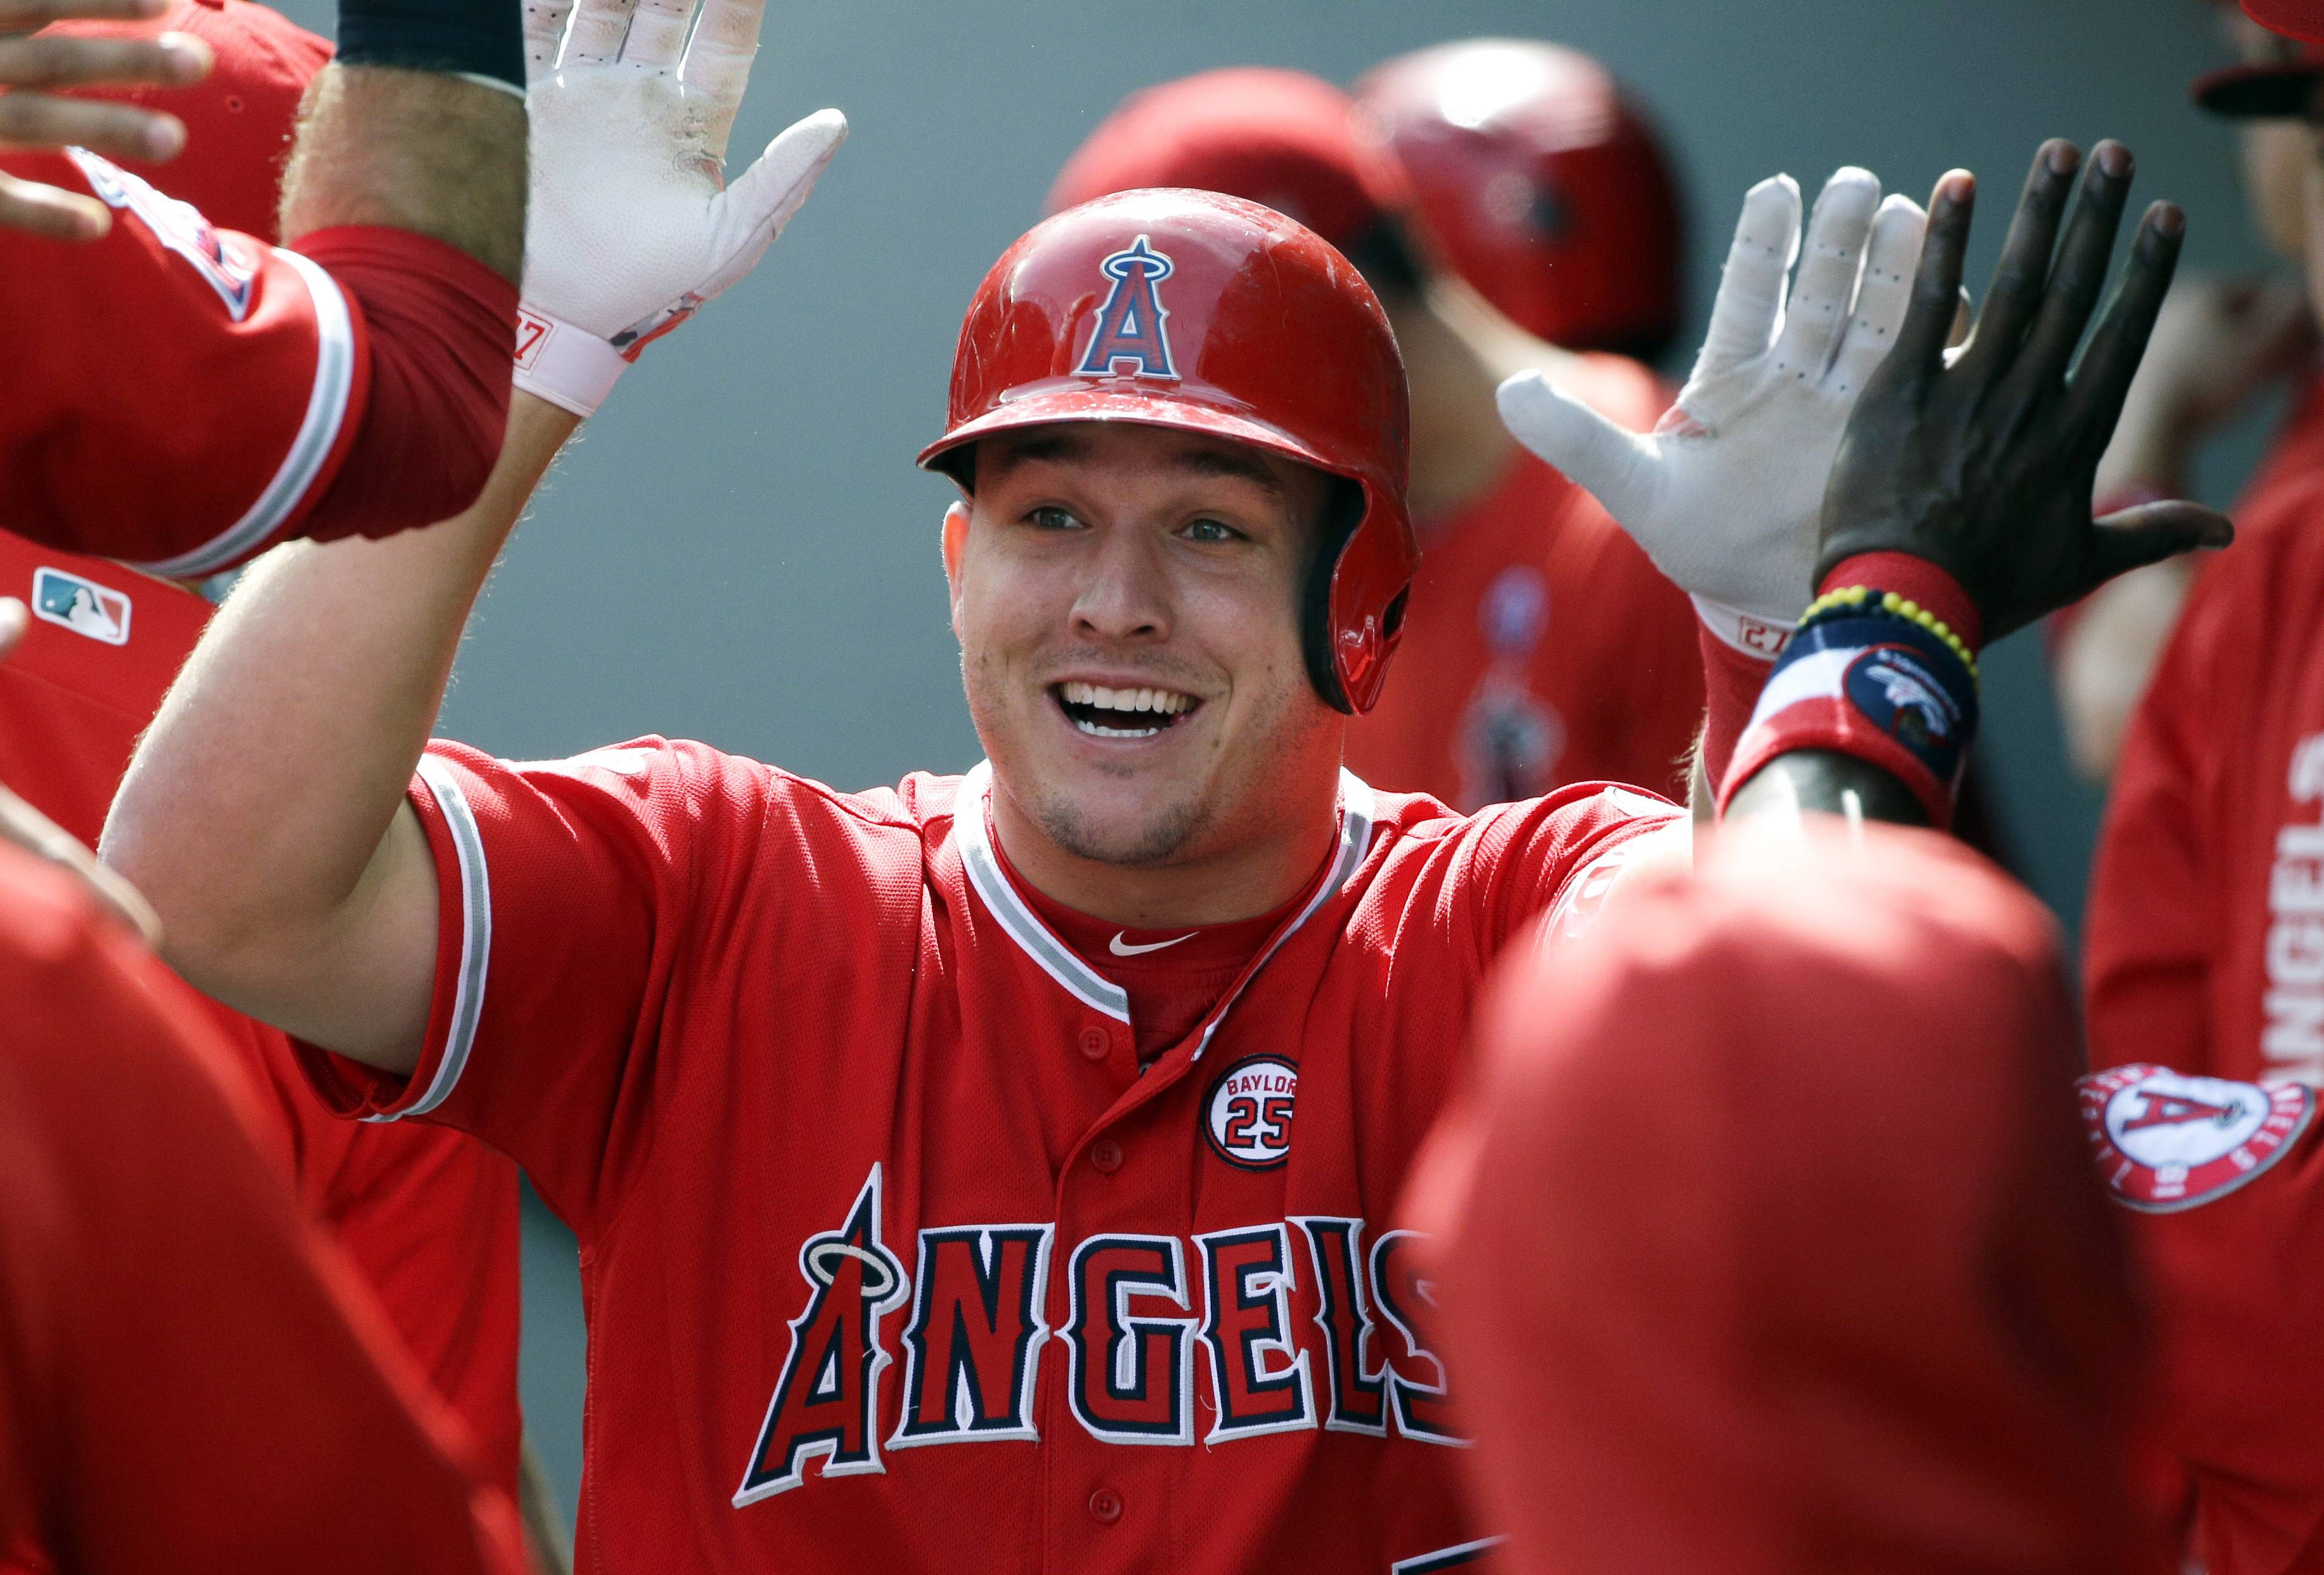 A person familiar with the negotiations tells The Associated Press Tuesday that Mike Trout and the Anaheim Angels are close to finalizing a record $432 million, 12-year contract that would shatter the record for the largest deal in North American sports history.